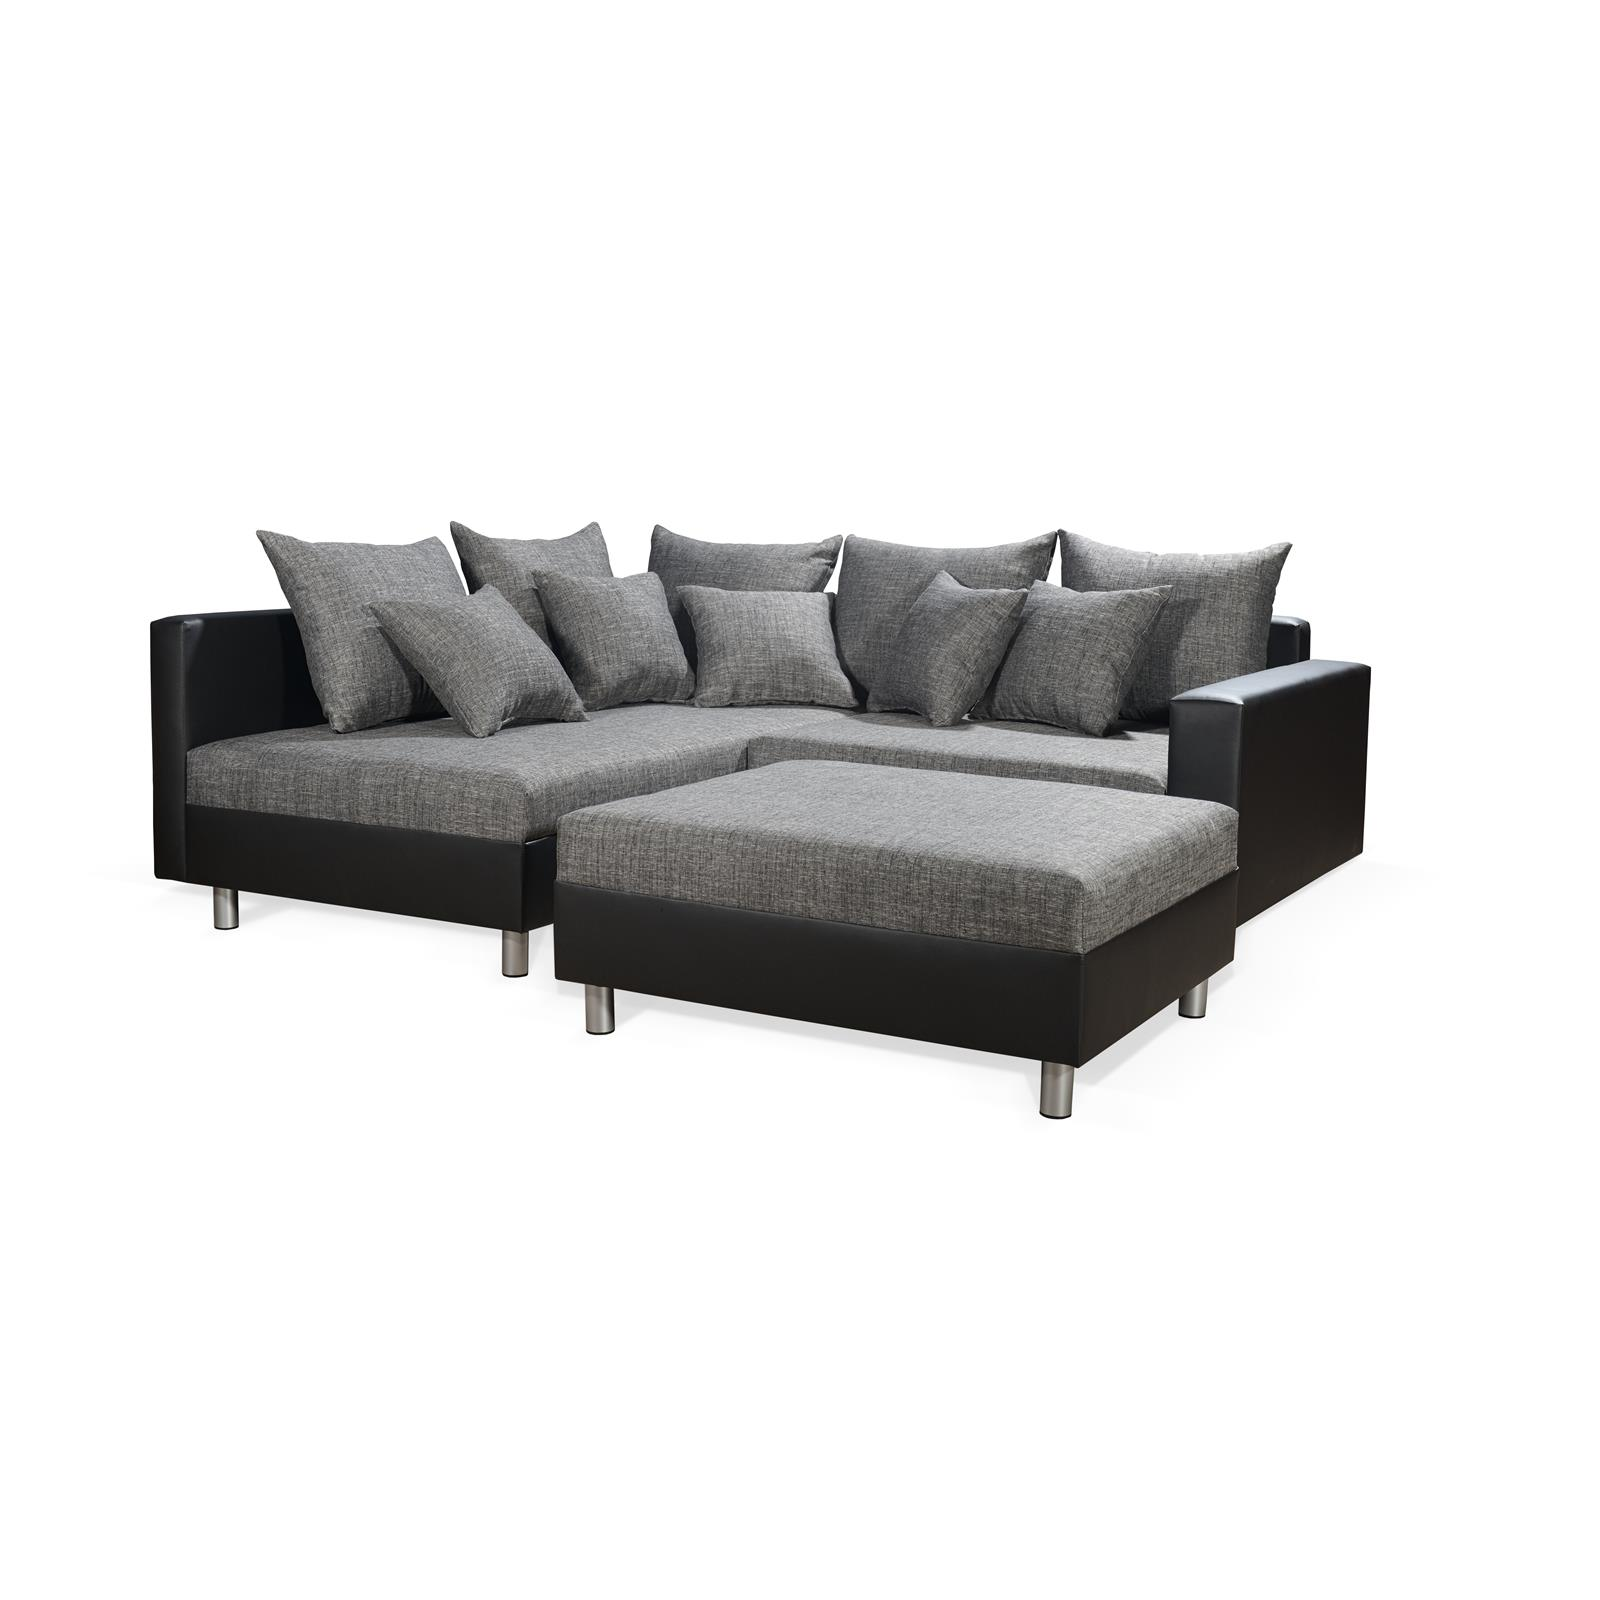 ecksofa couch mit hocker in schwarz grau weiss polster garnitur ottomane links. Black Bedroom Furniture Sets. Home Design Ideas